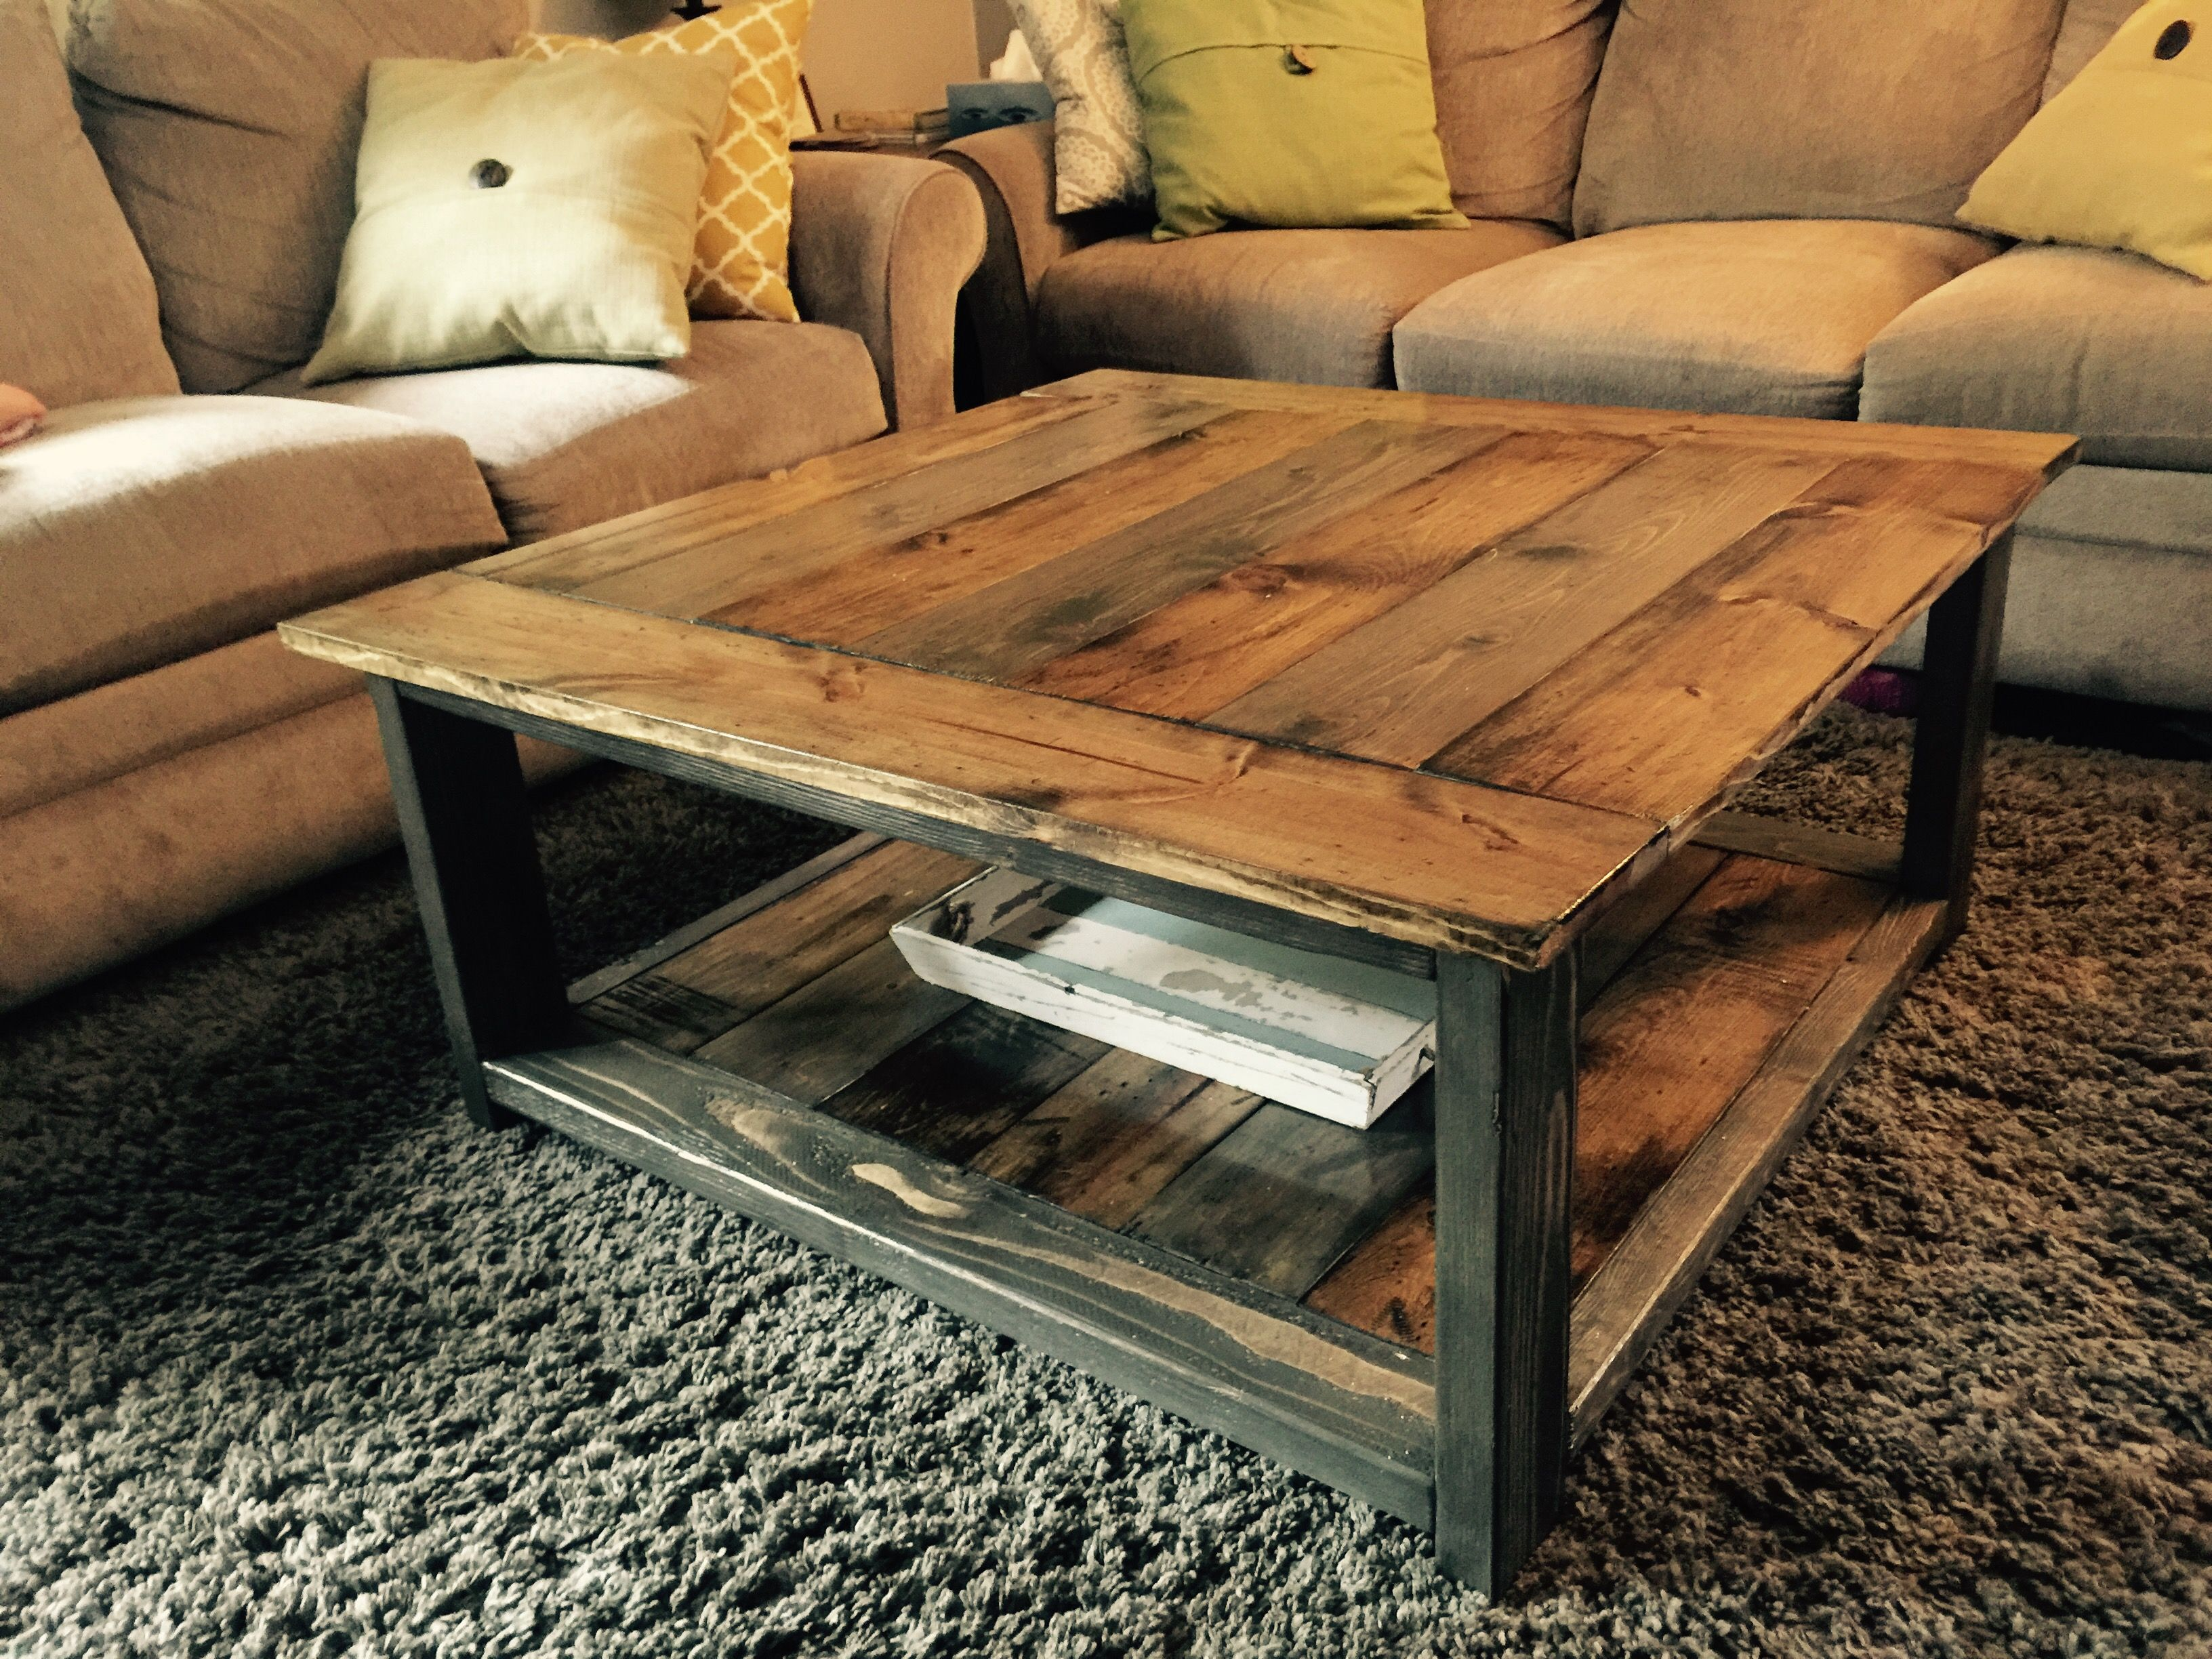 RusticXless Coffee Table Do It Yourself Home Projects